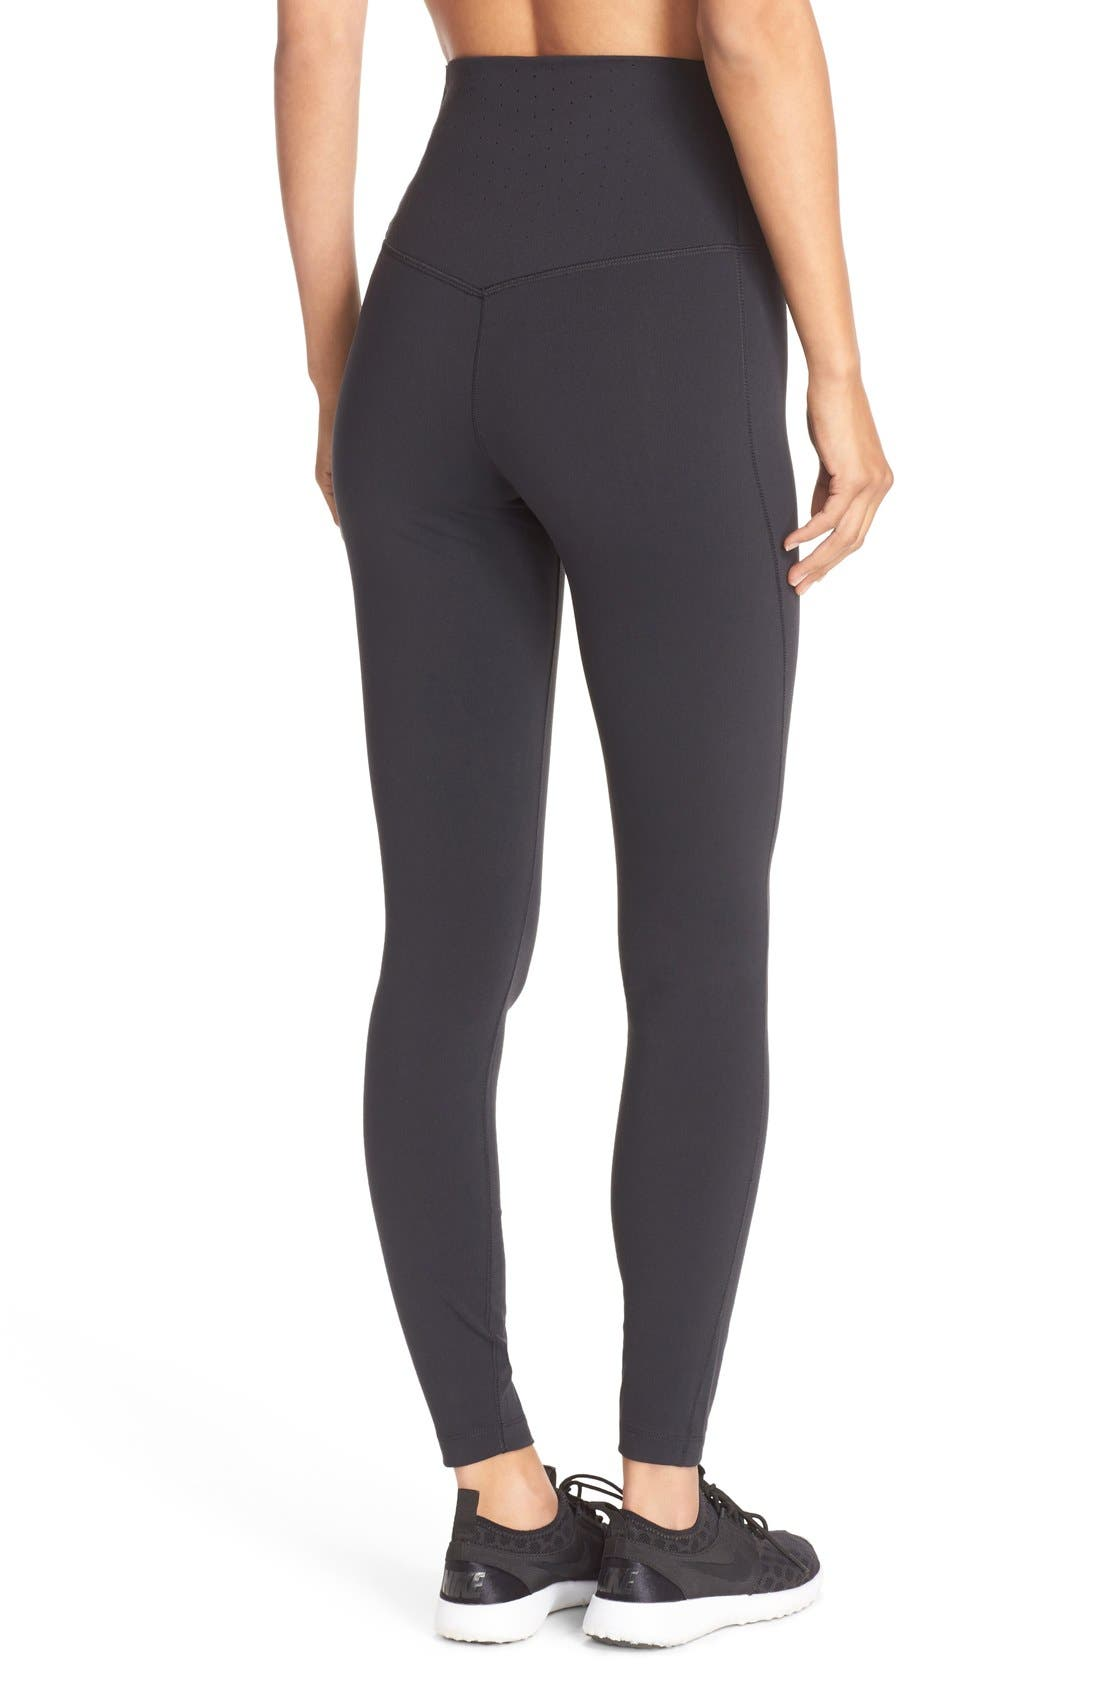 Alternate Image 2  - Nike Power Legendary High Waist Tights